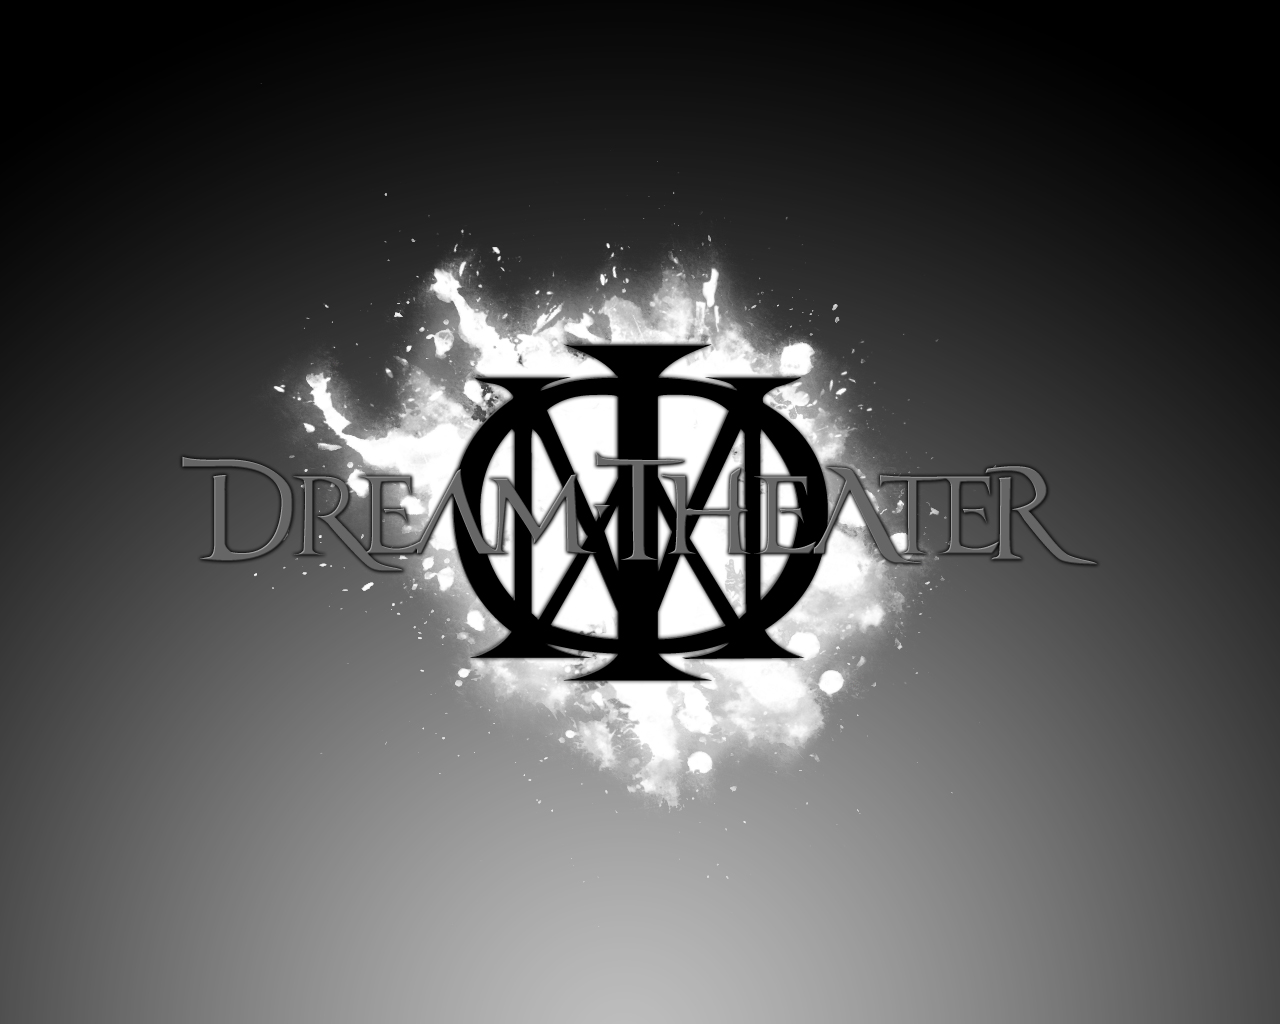 Dream Theater Computer Wallpapers Desktop Backgrounds 1280x1024 1280x1024